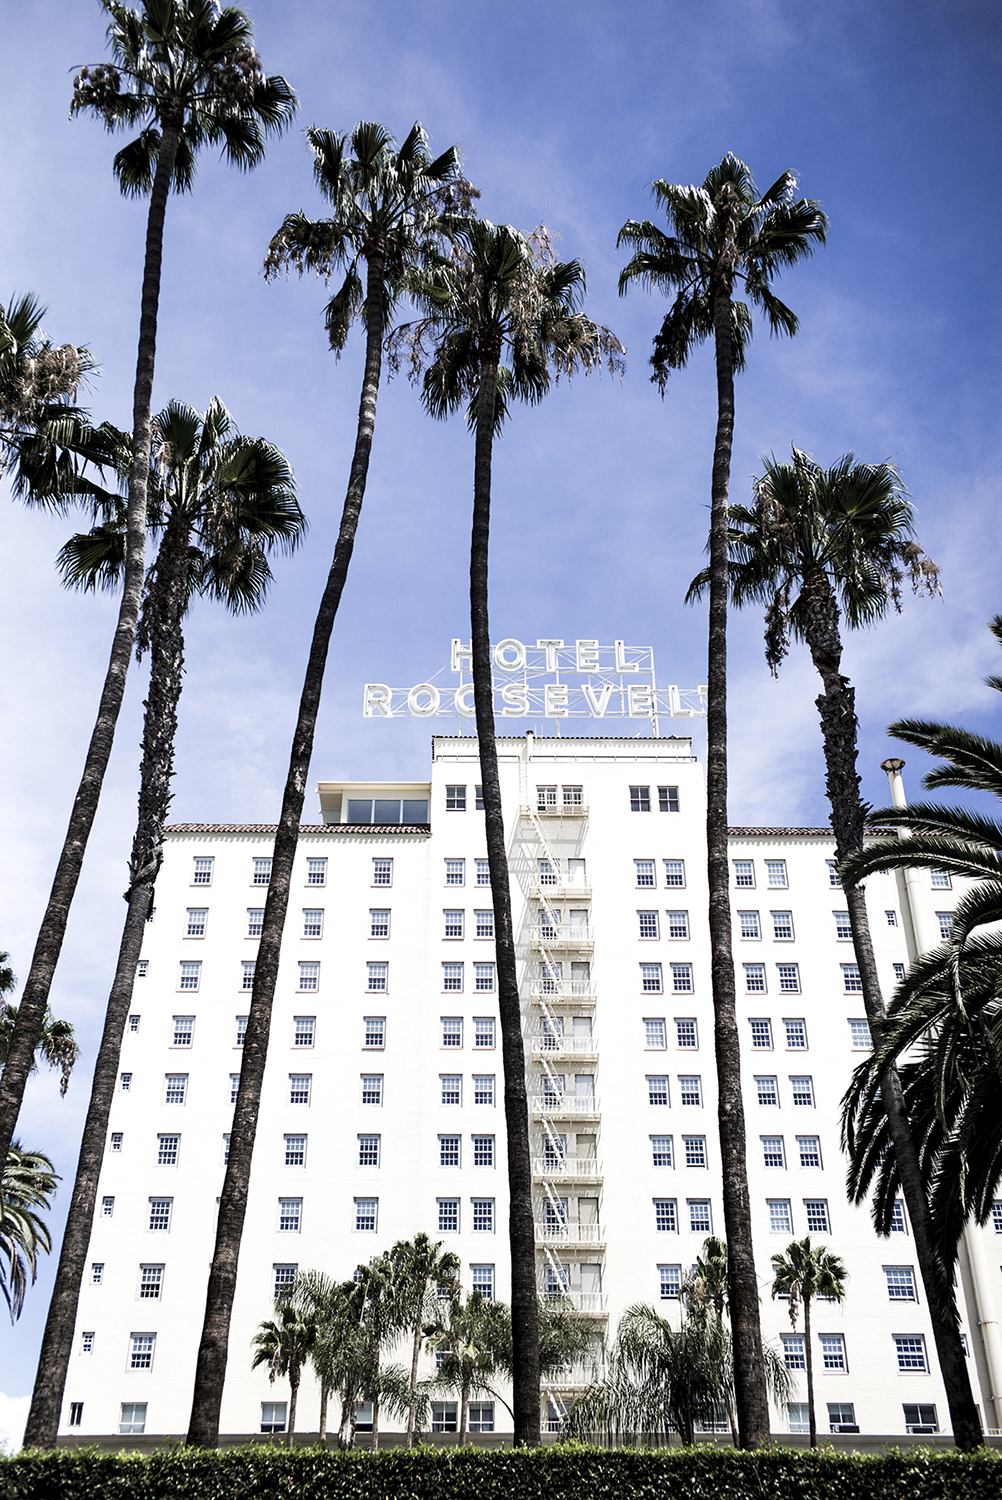 The Hollywood Roosevelt Hotel - Wikipedia